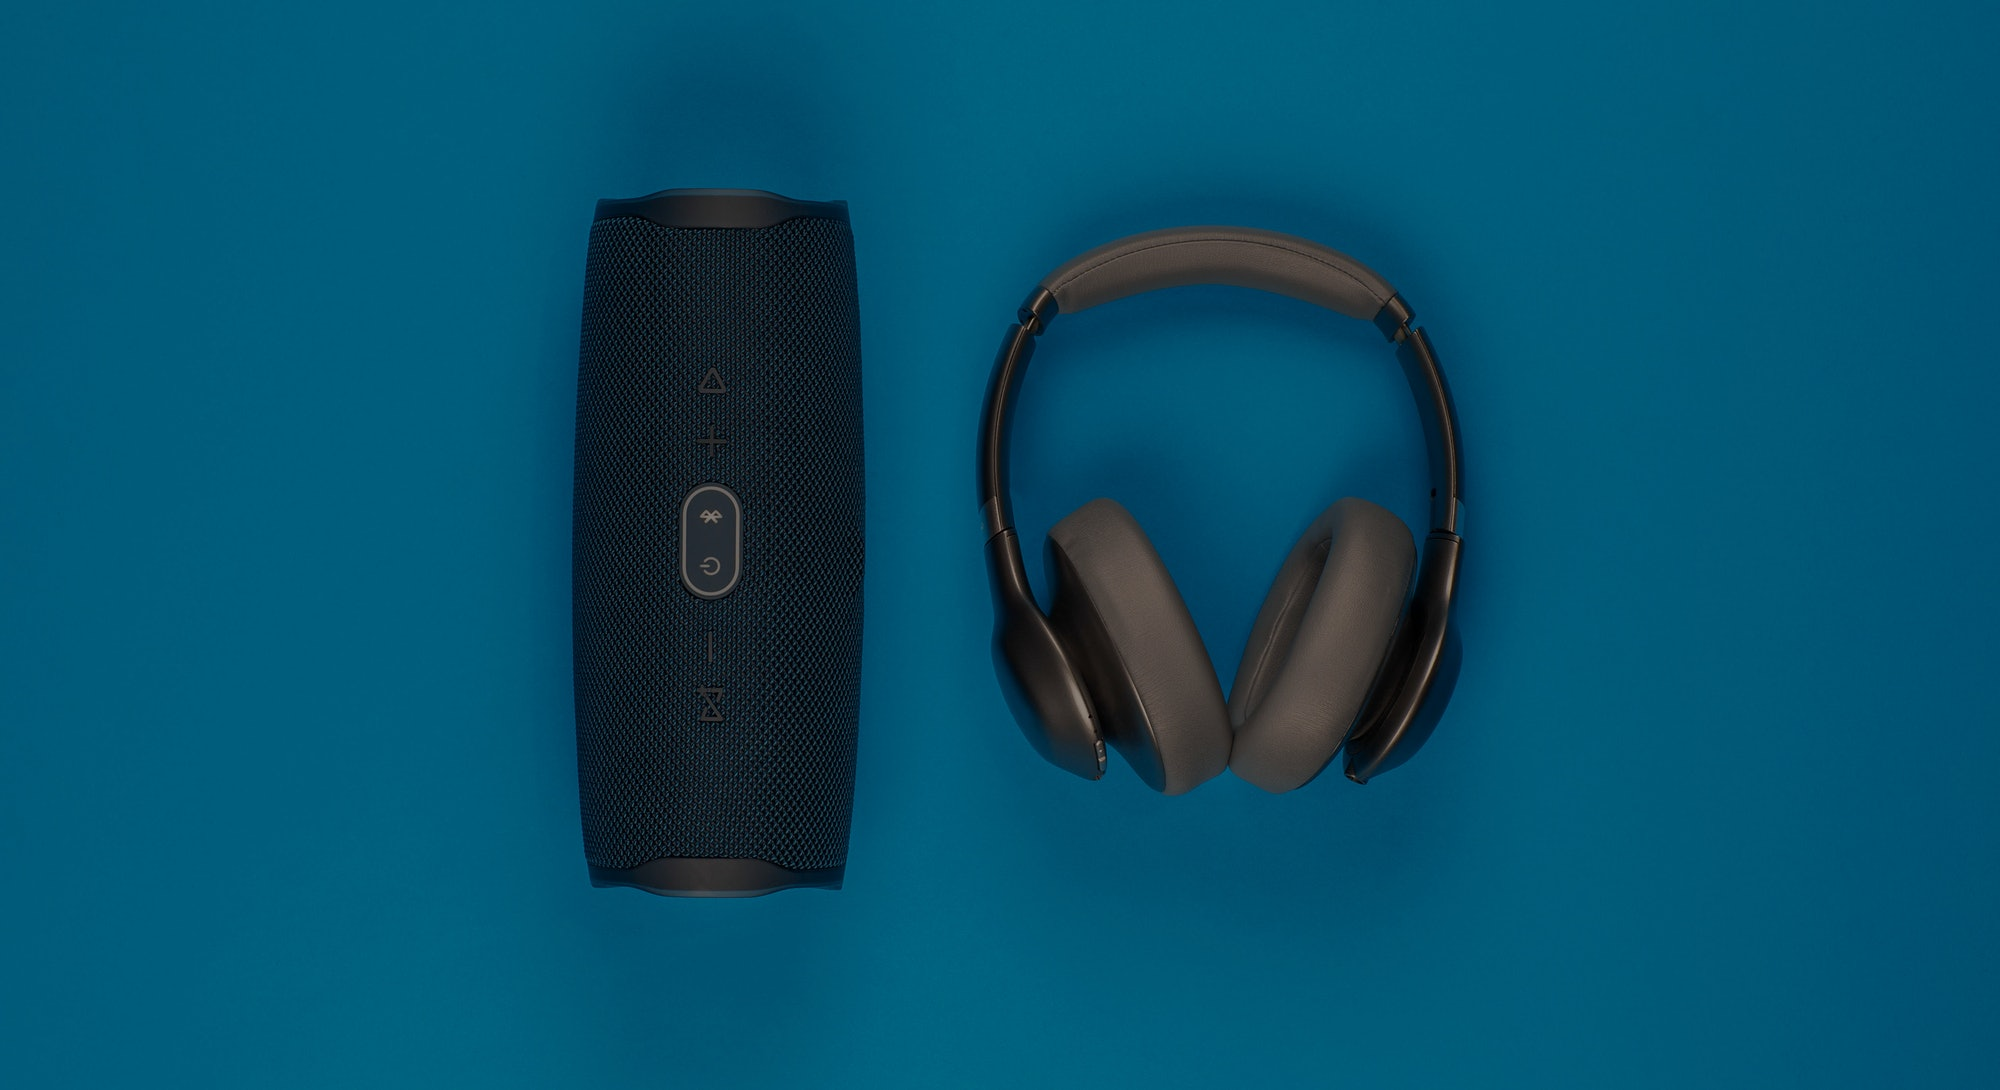 A pair of headphones next to a black speaker on blue background, shot from above.